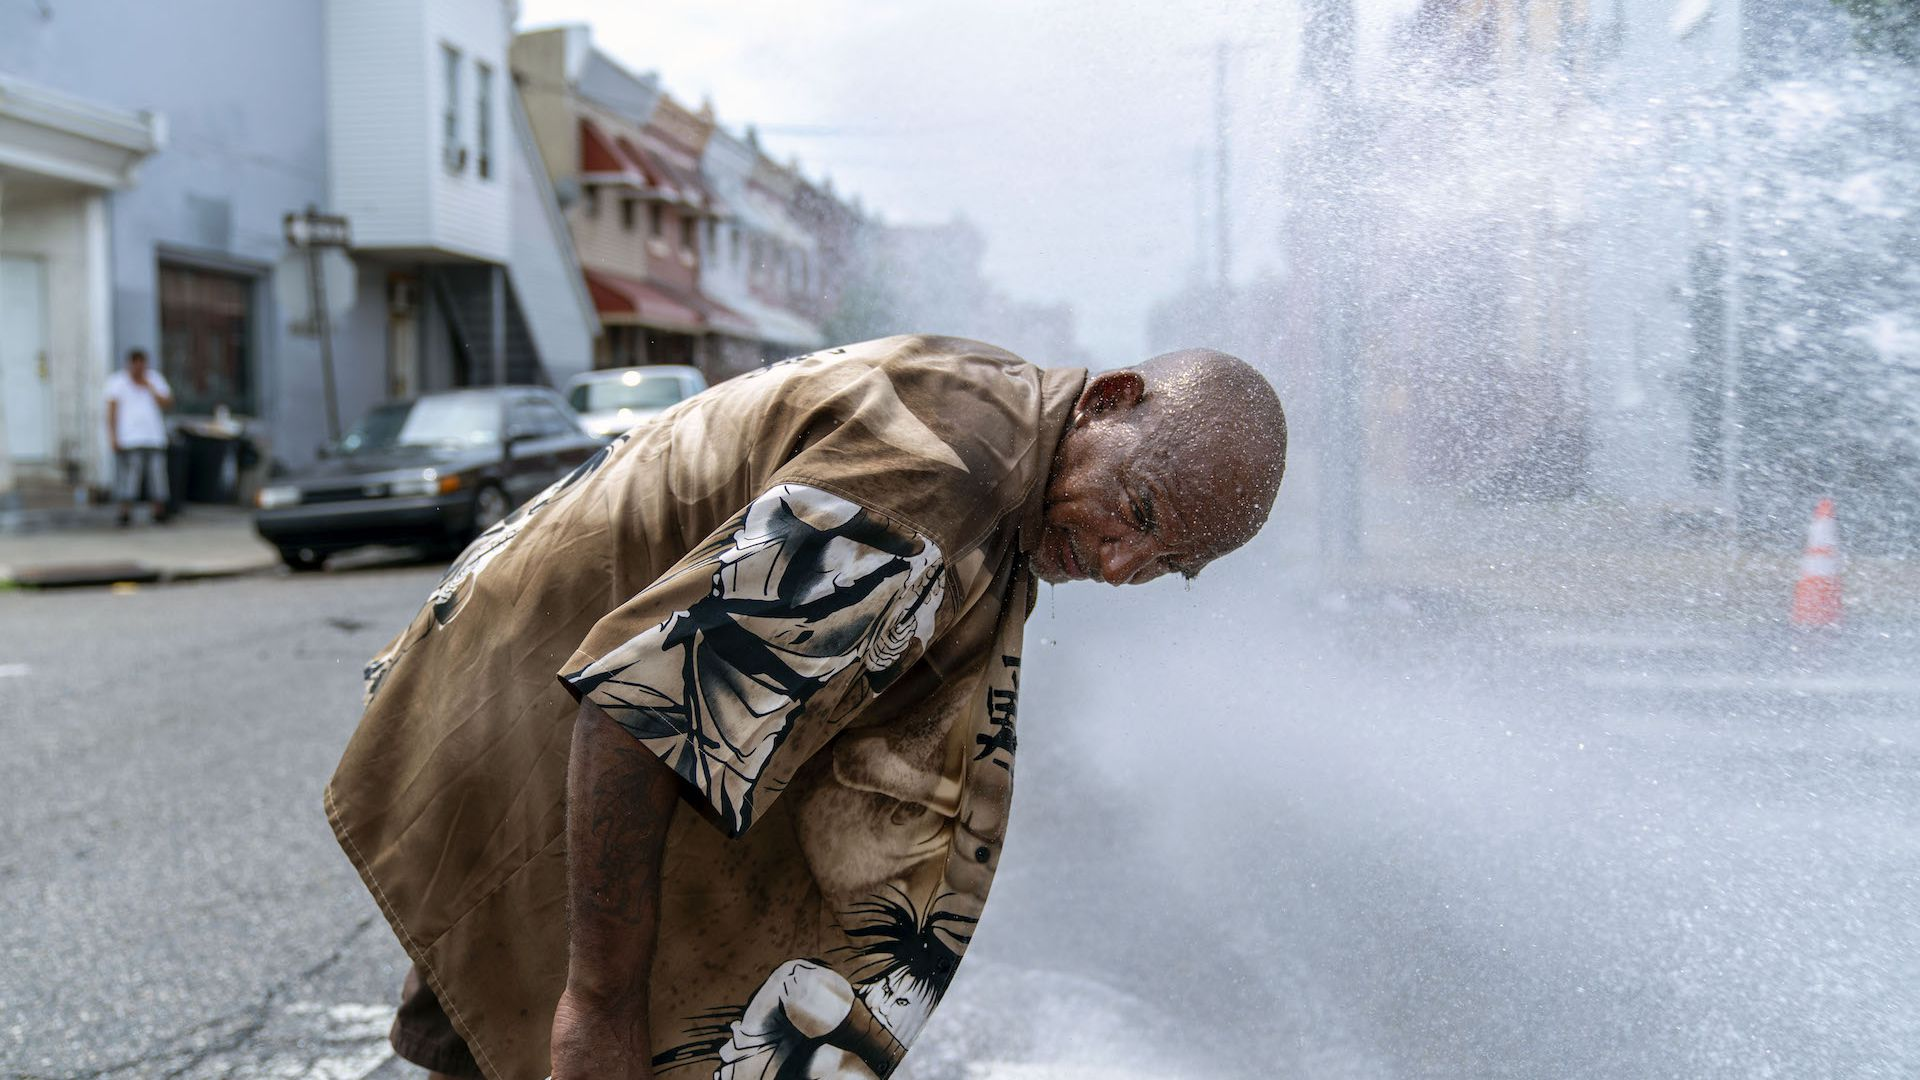 Eduardo Velev cools off in the spray of a fire hydrant during a heatwave on July 1, 2018 in Philadelphia.